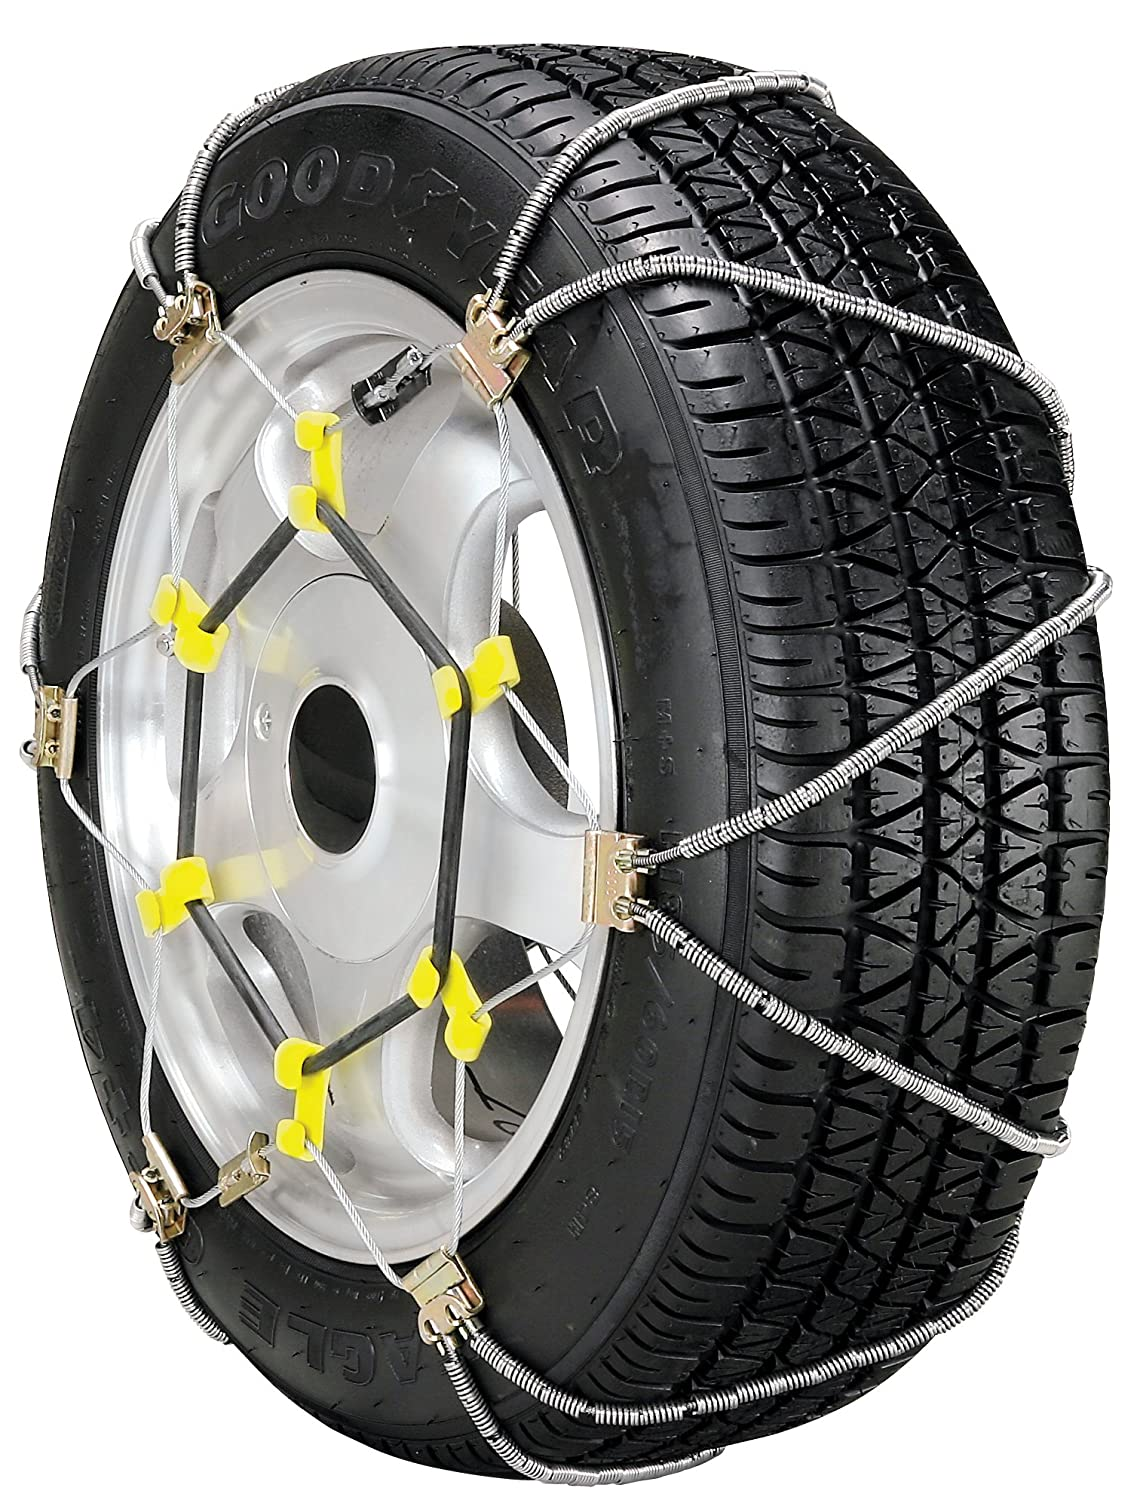 Security Chain Company SZ315 Shur Grip Z Passenger Car Tire Traction Chain, Set of 2